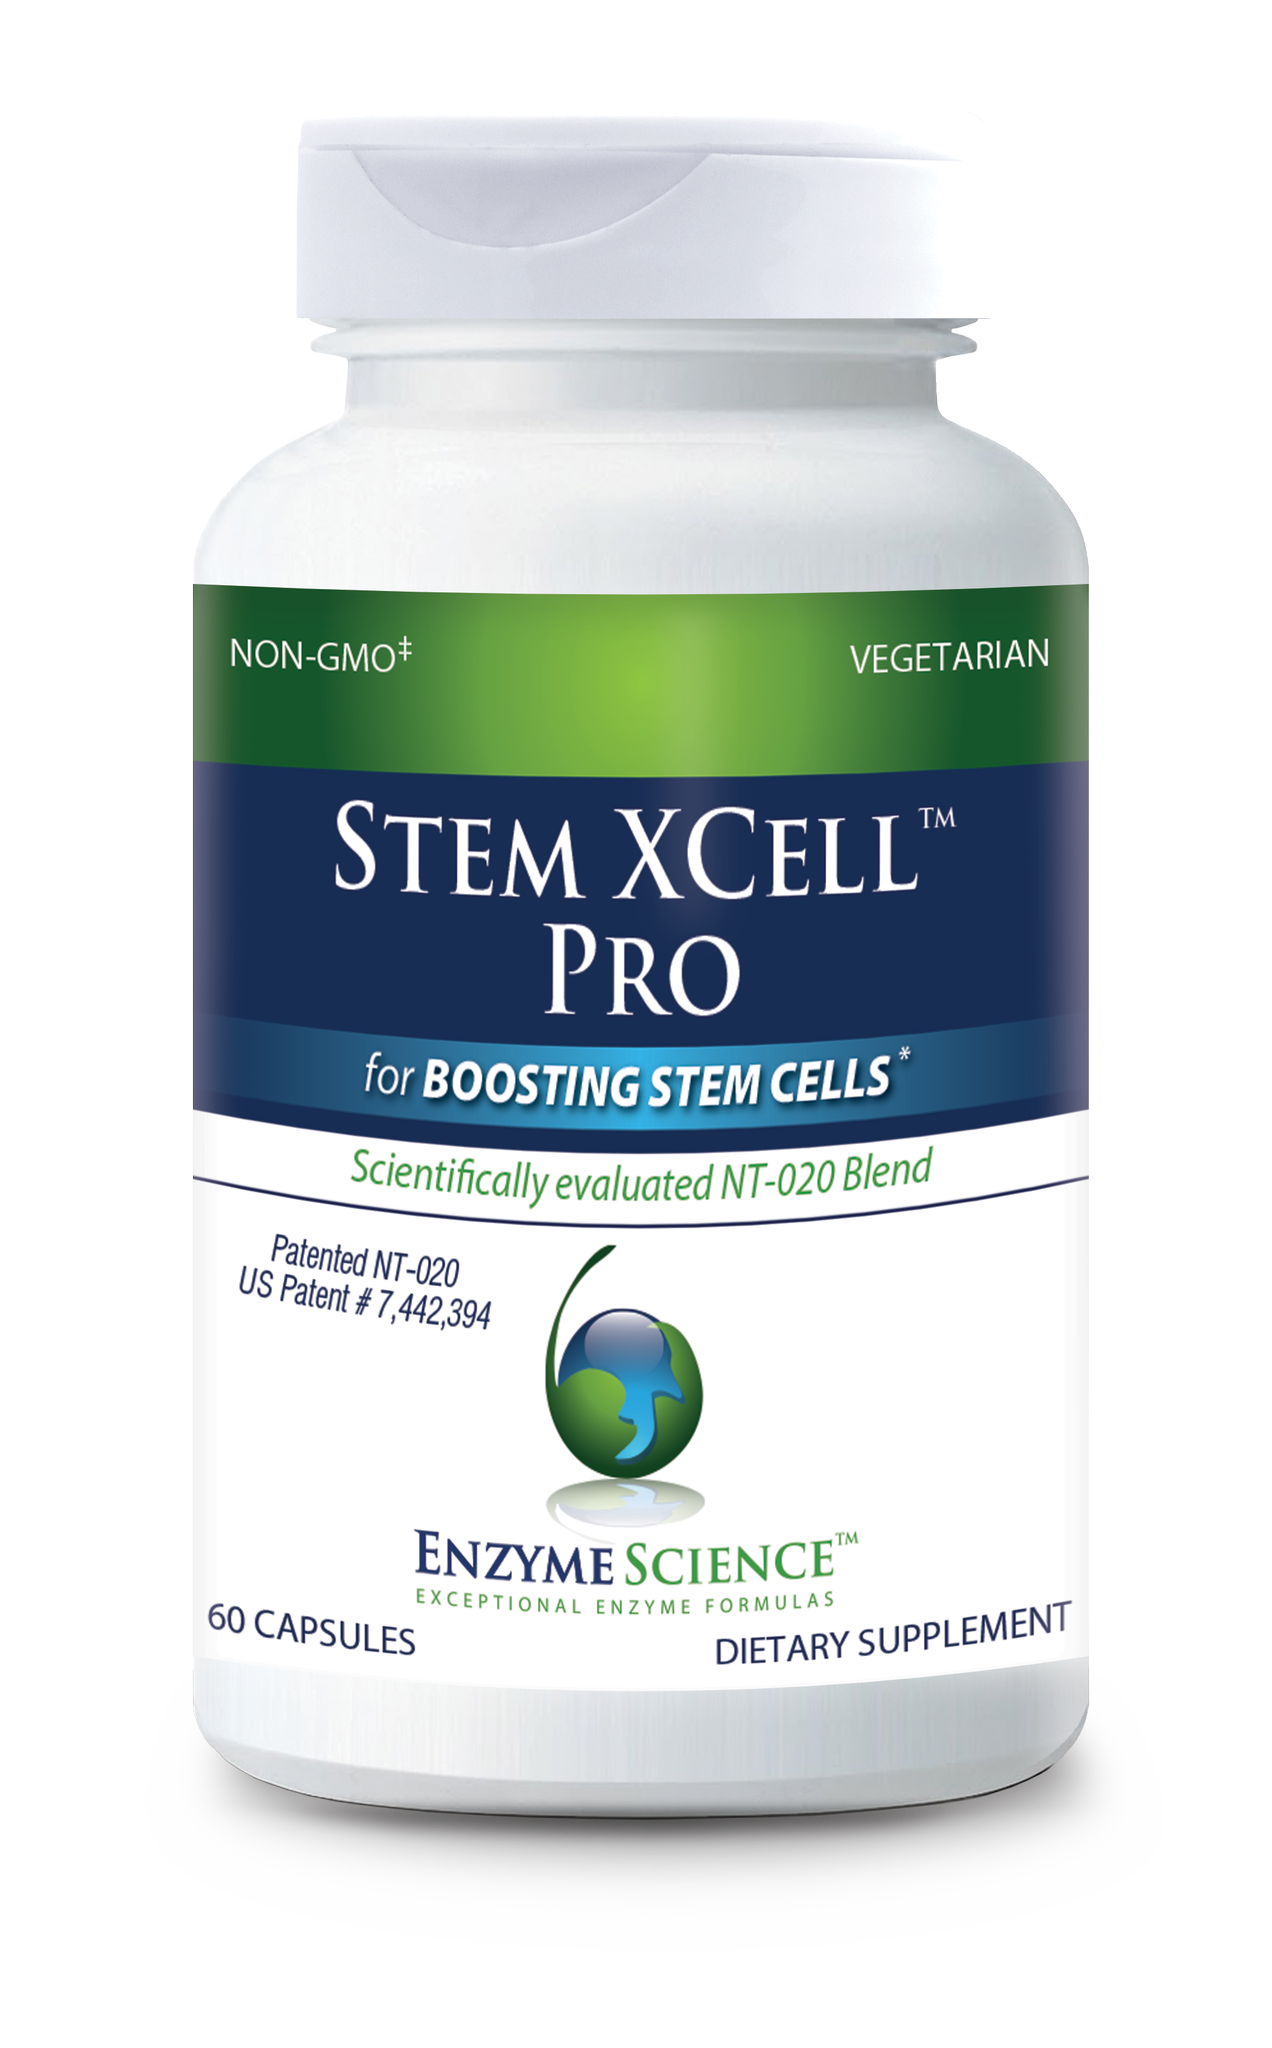 Stem XCell Pro 60c Enzyme Science